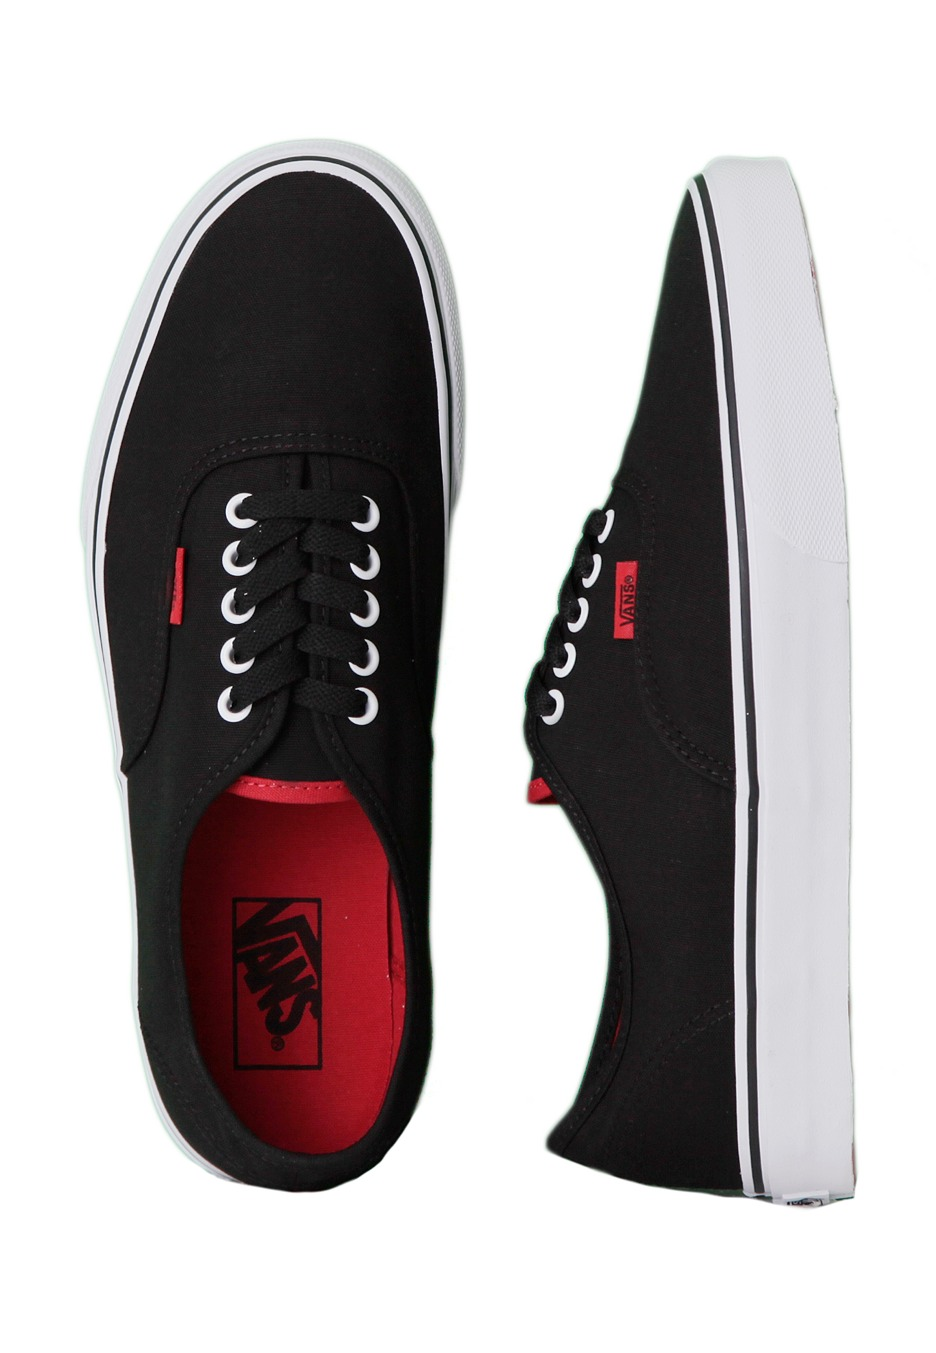 db10d4d3b7b8 Vans - Authentic Pop Black Chinese Red - Shoes - Impericon.com Worldwide